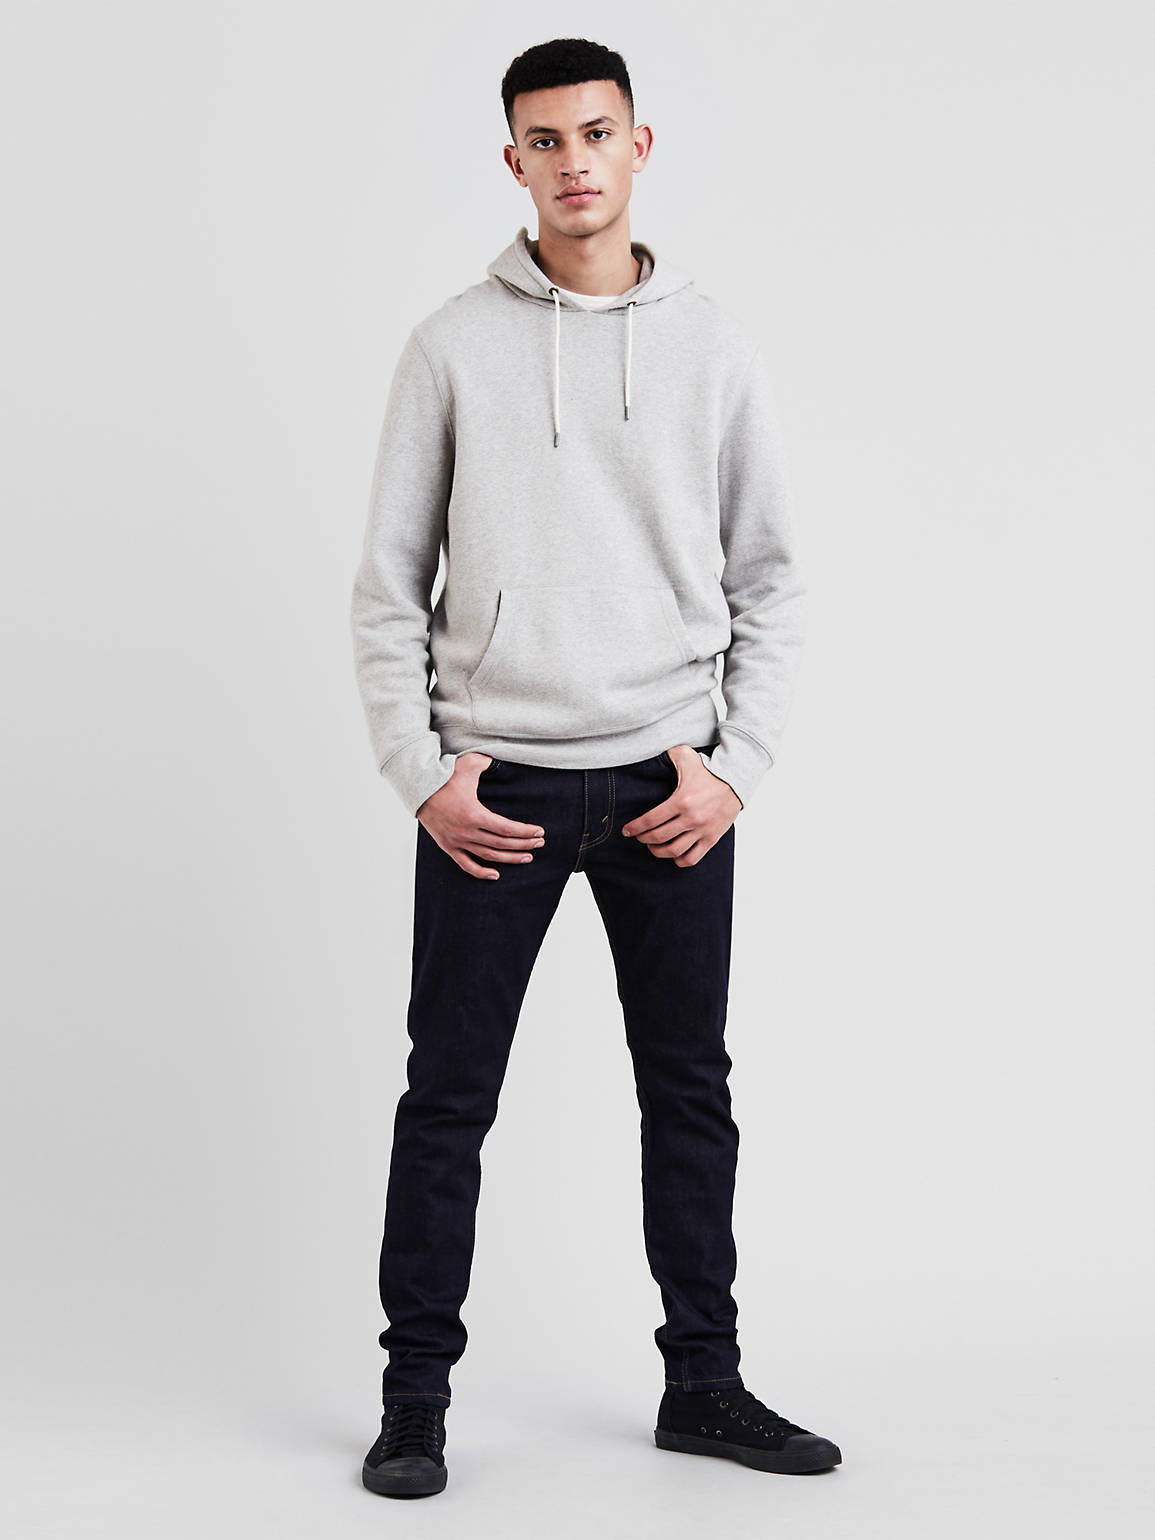 a model wearing the pants in dark hollow wash